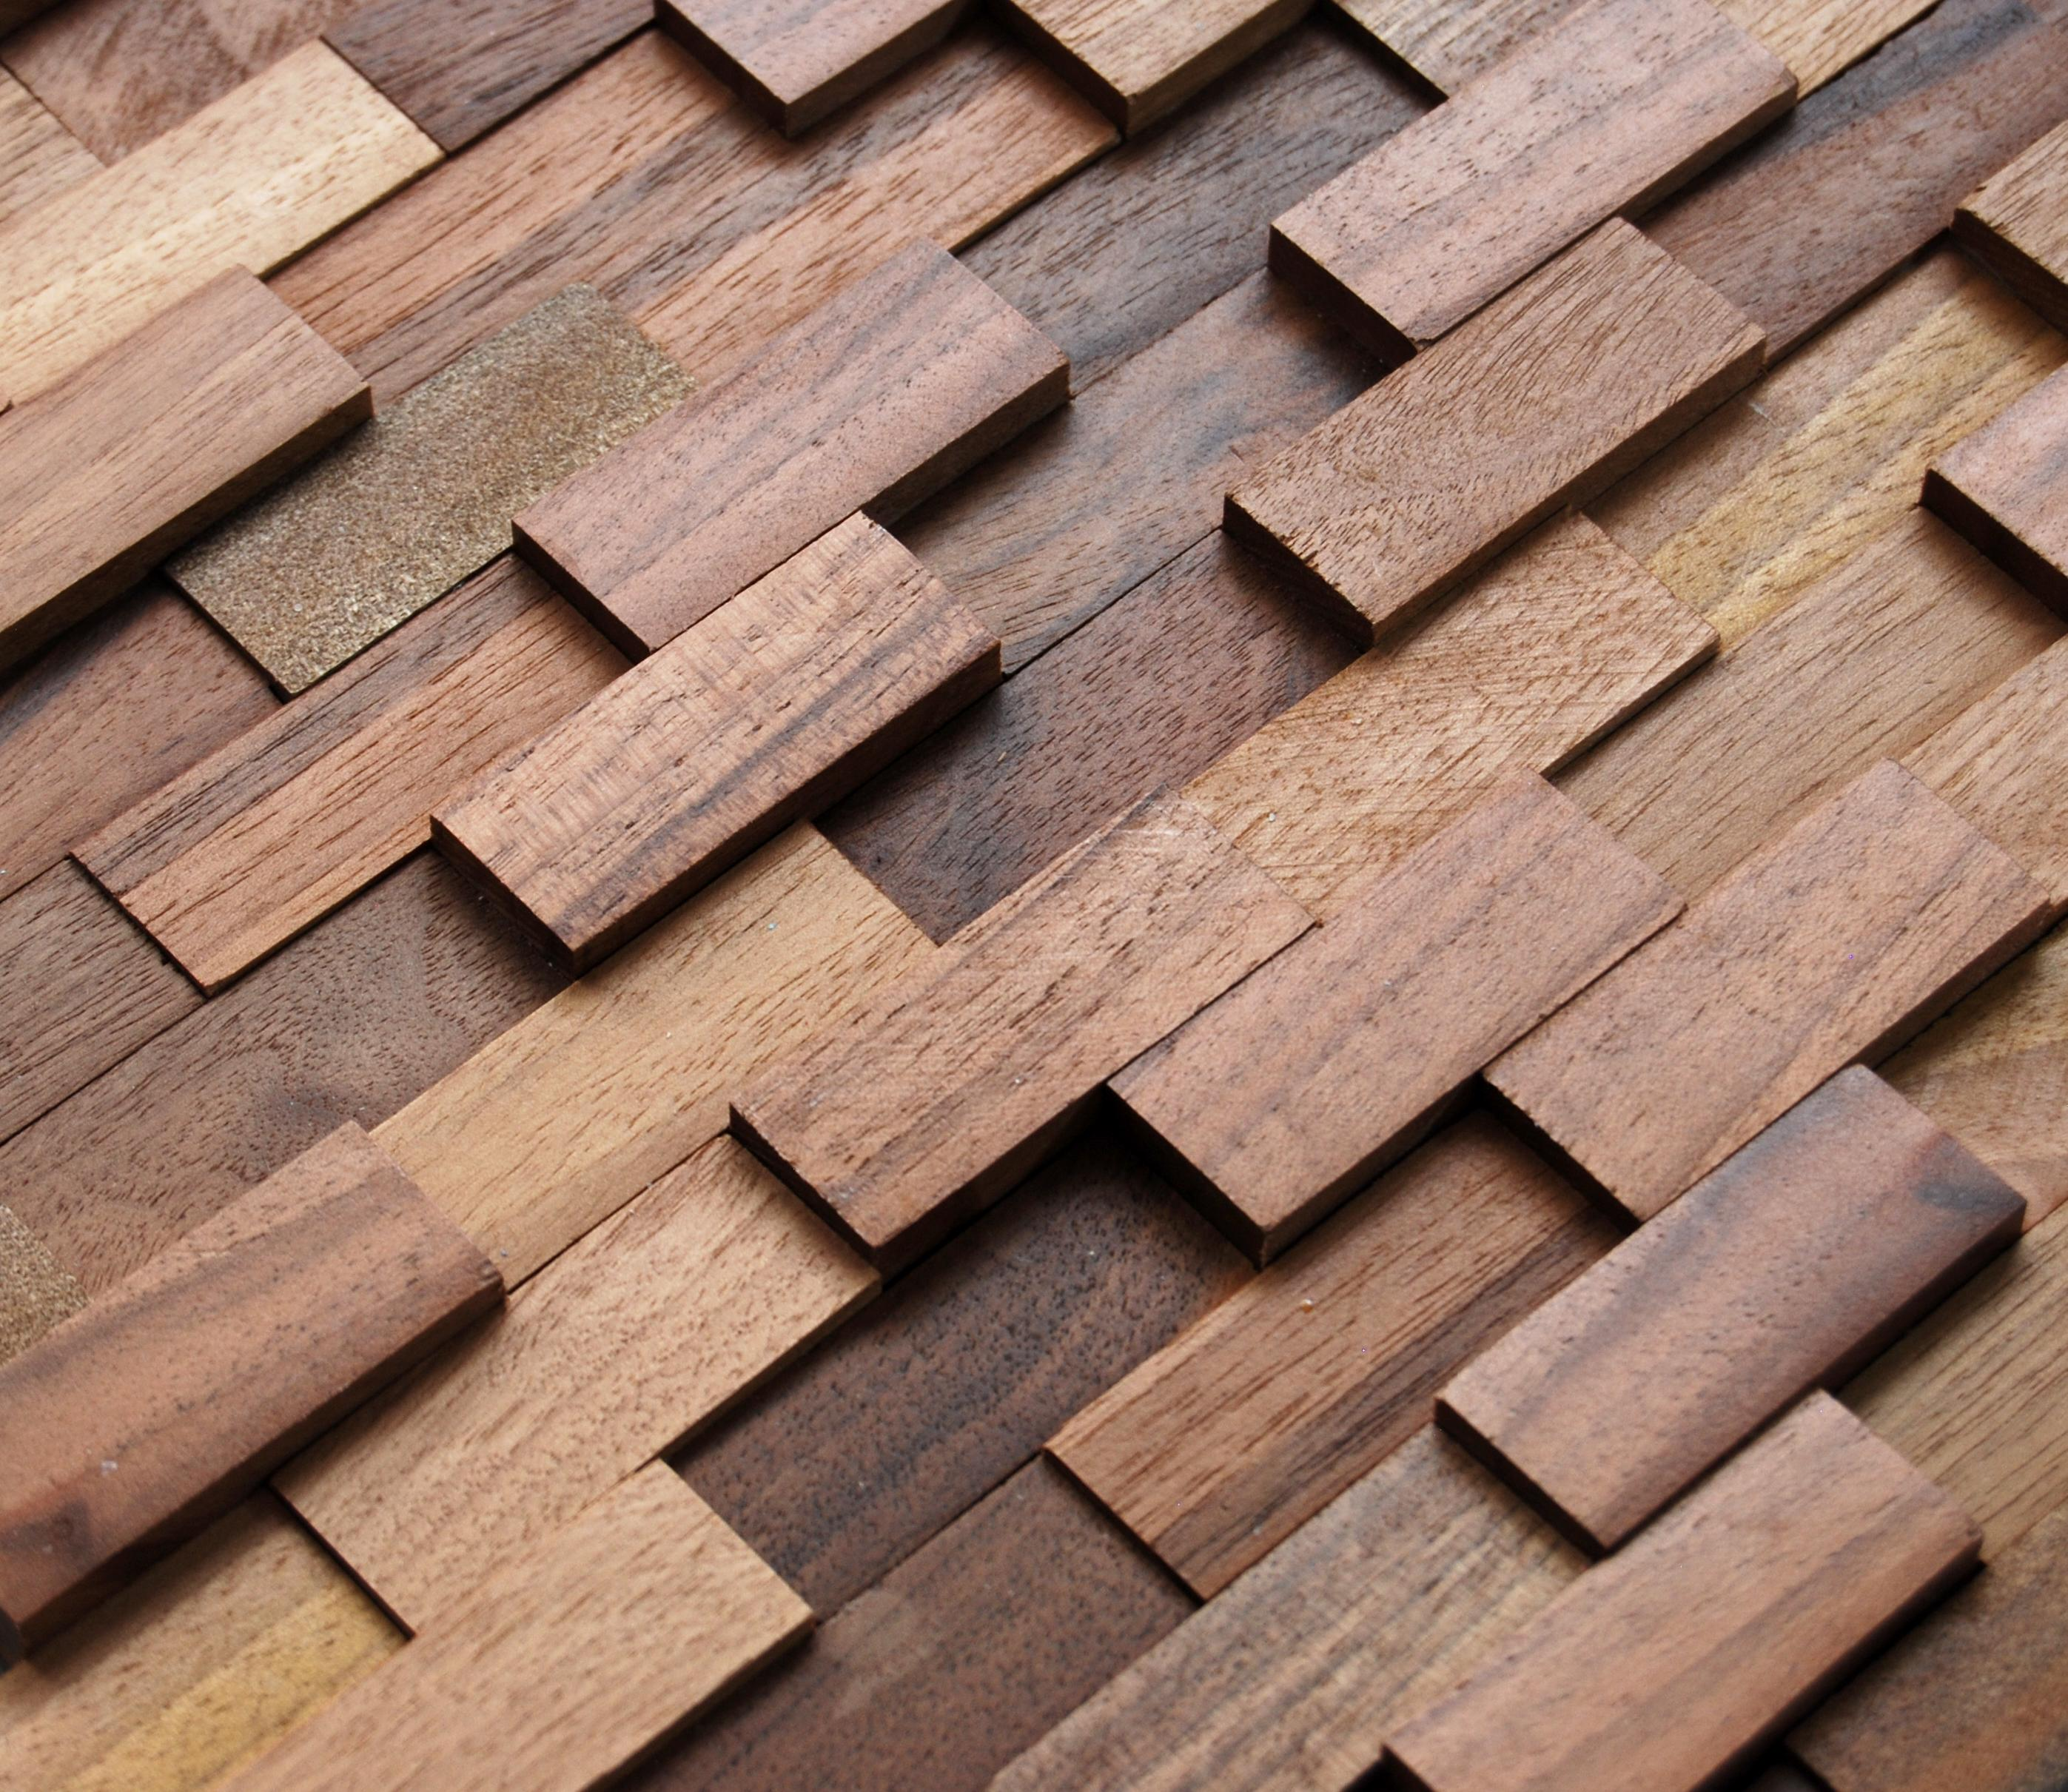 Mosaic wood - Wooden wall design ...